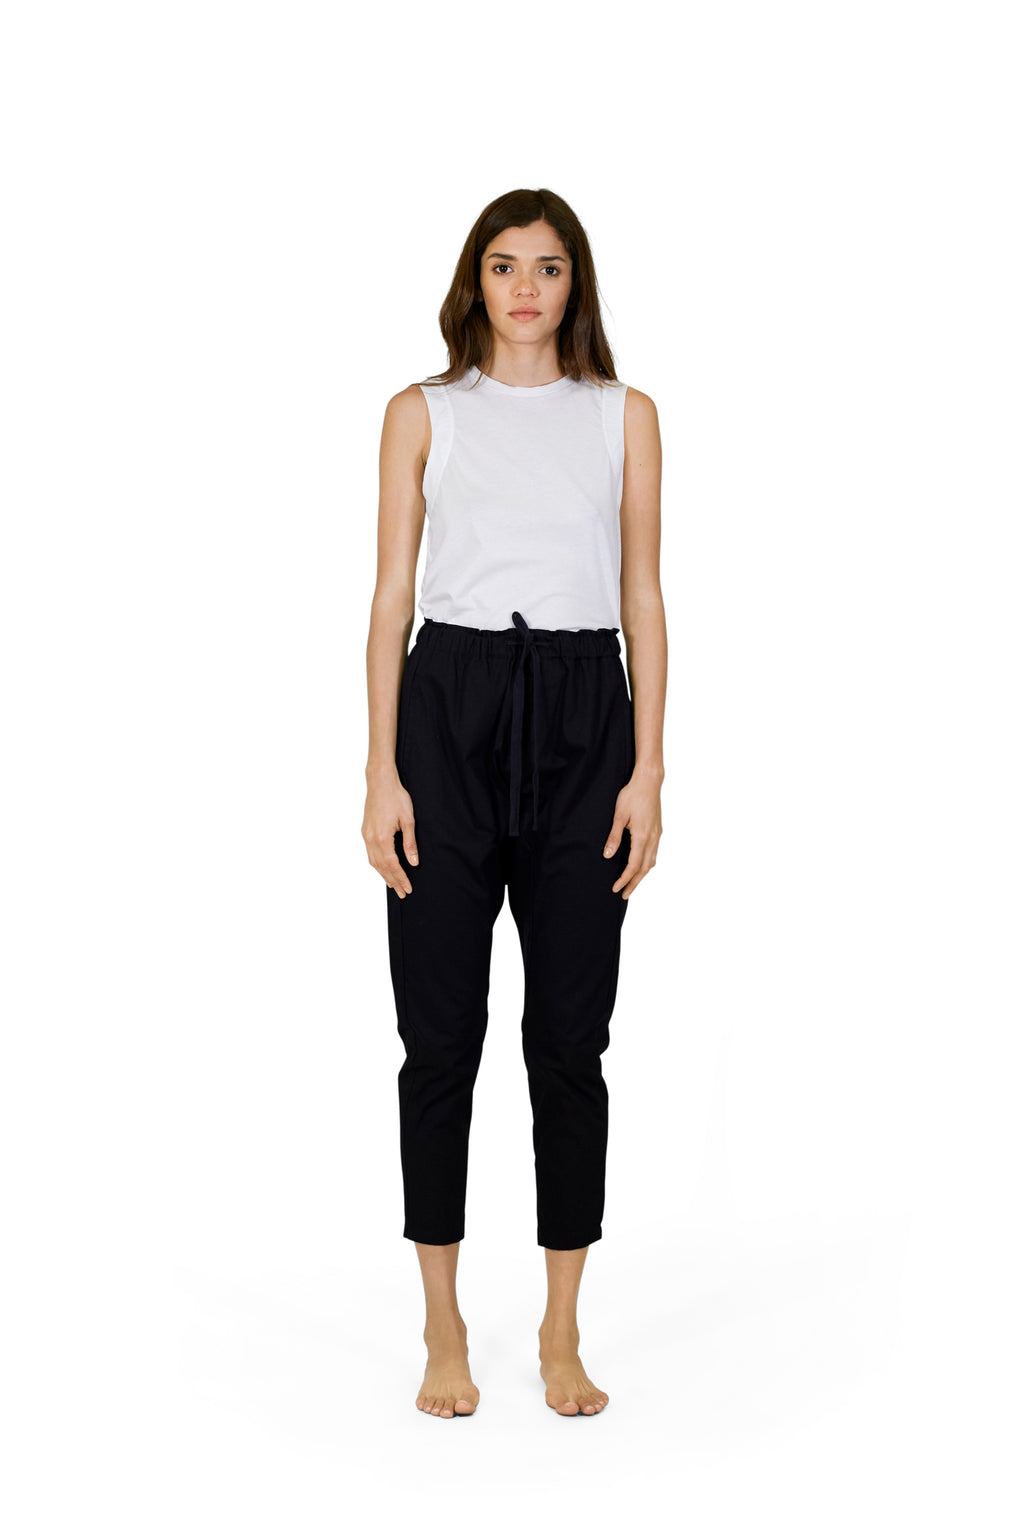 SanBasic Drop Pant